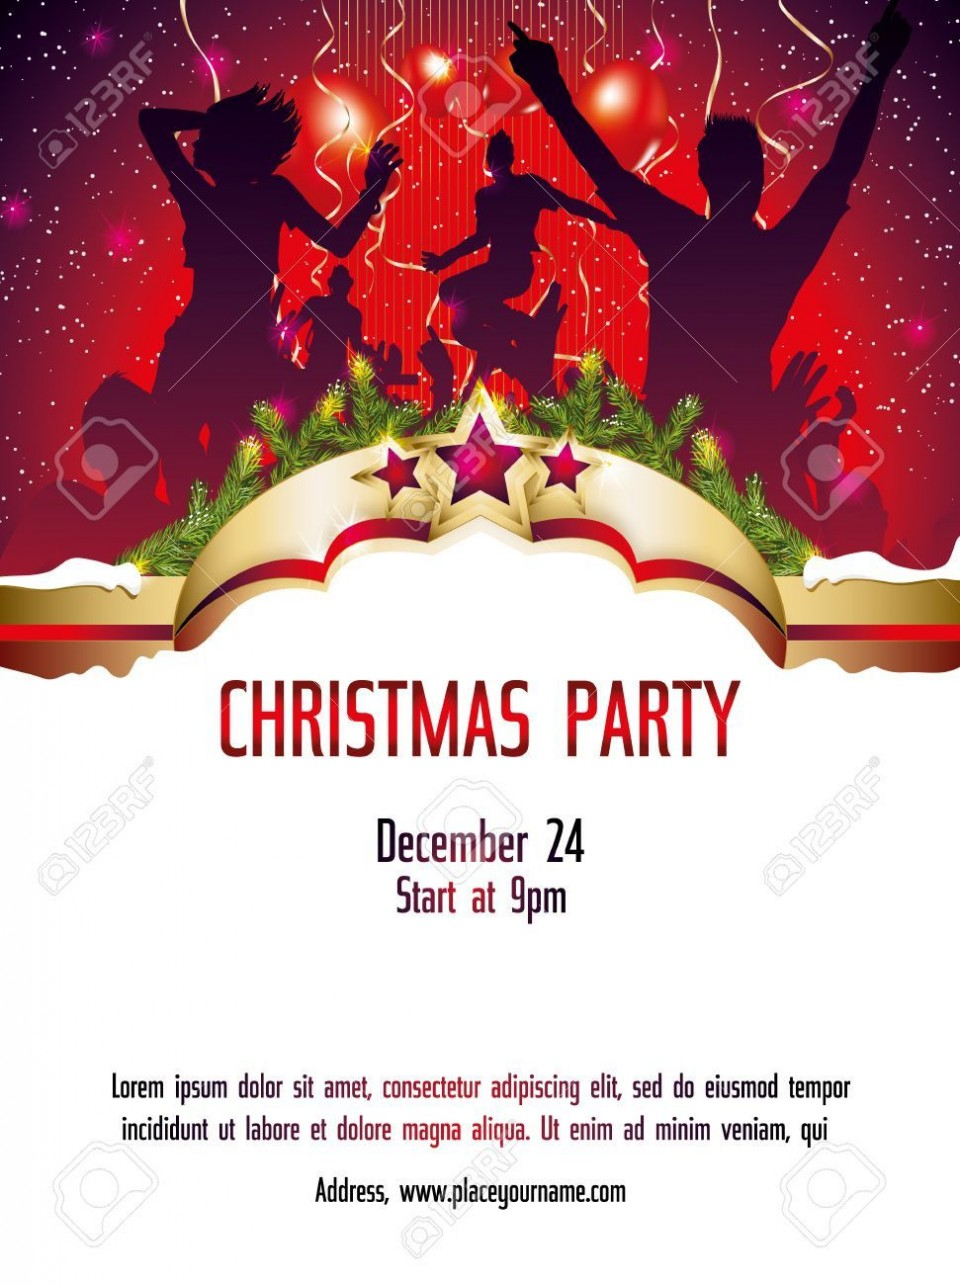 002 Shocking Christma Party Invitation Template High Definition  Holiday Download Free Psd960